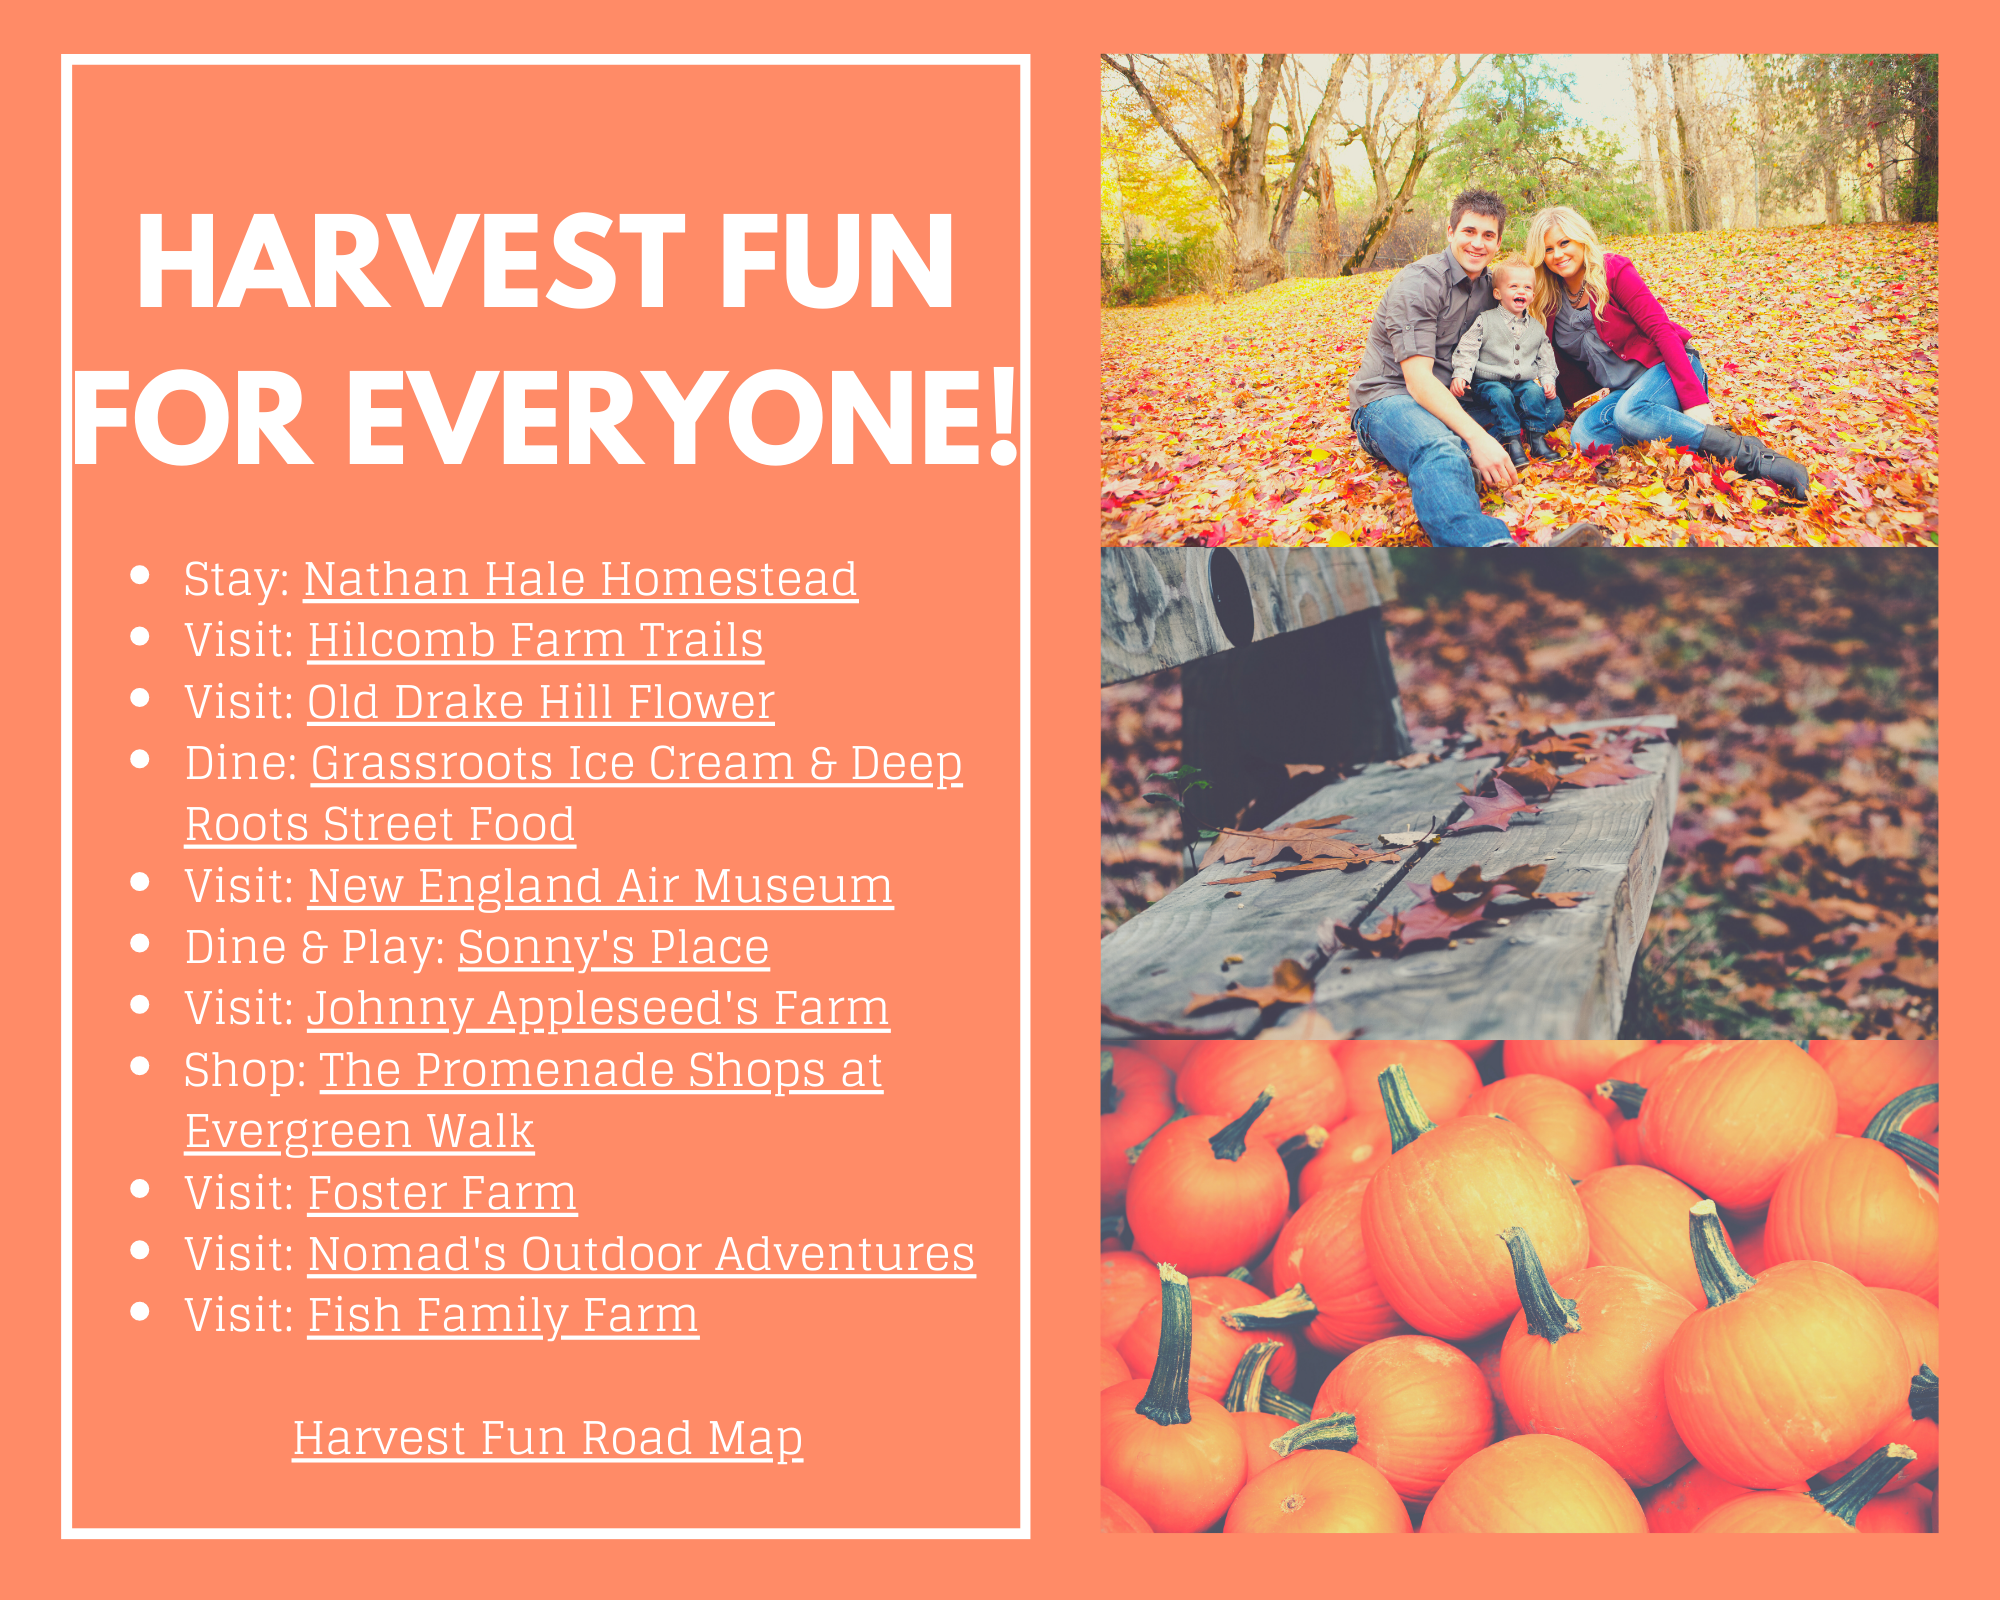 Harvest Fun for Everyone